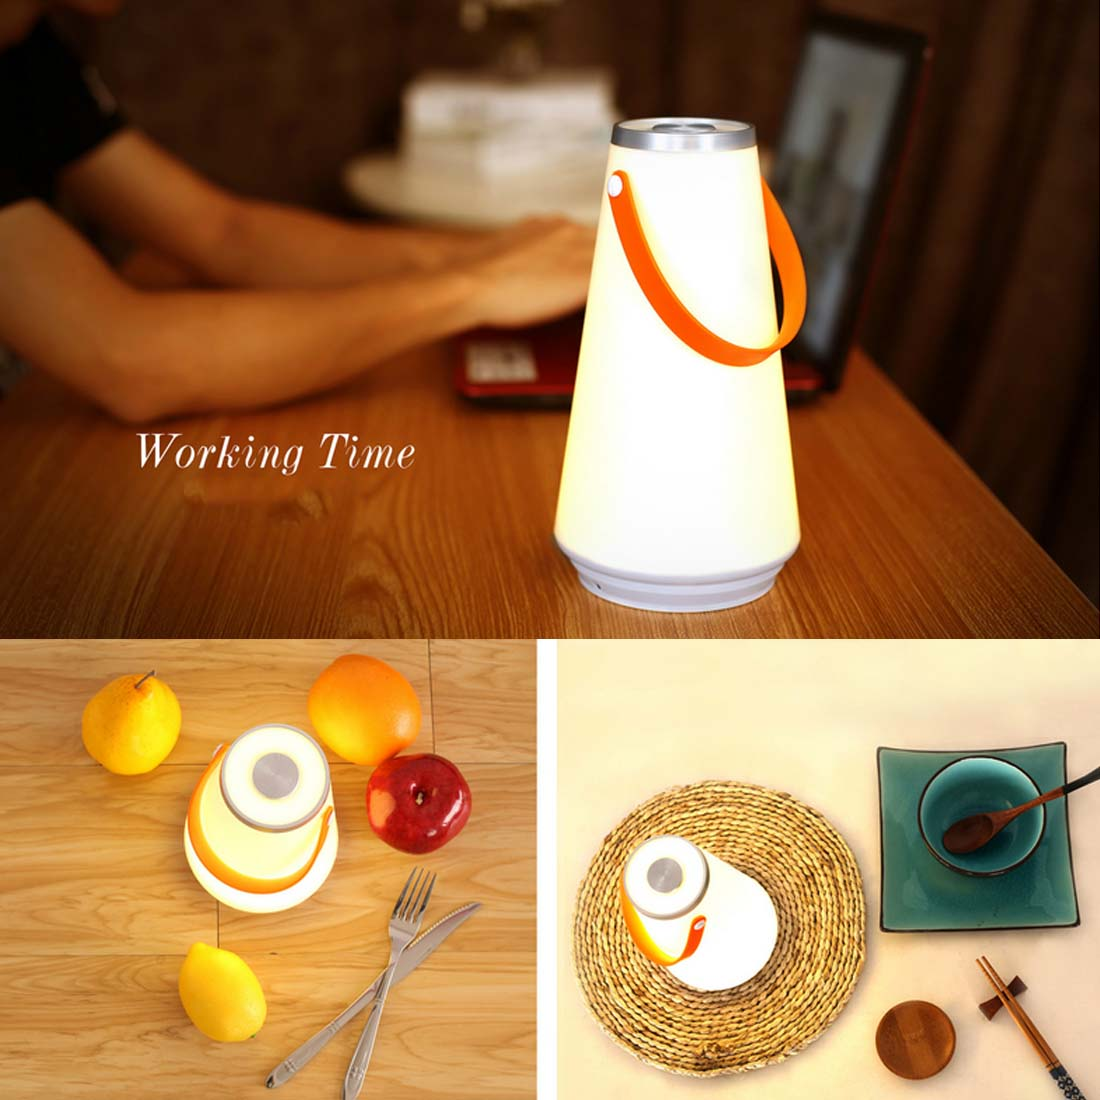 Portable Wireless LED Night Light Table Lamp USB Rechargeable Touch Switch Outdoor Camping Travel Home Emergency Light usb rechargeable portable led lamp bulb emergency light with switch high quality